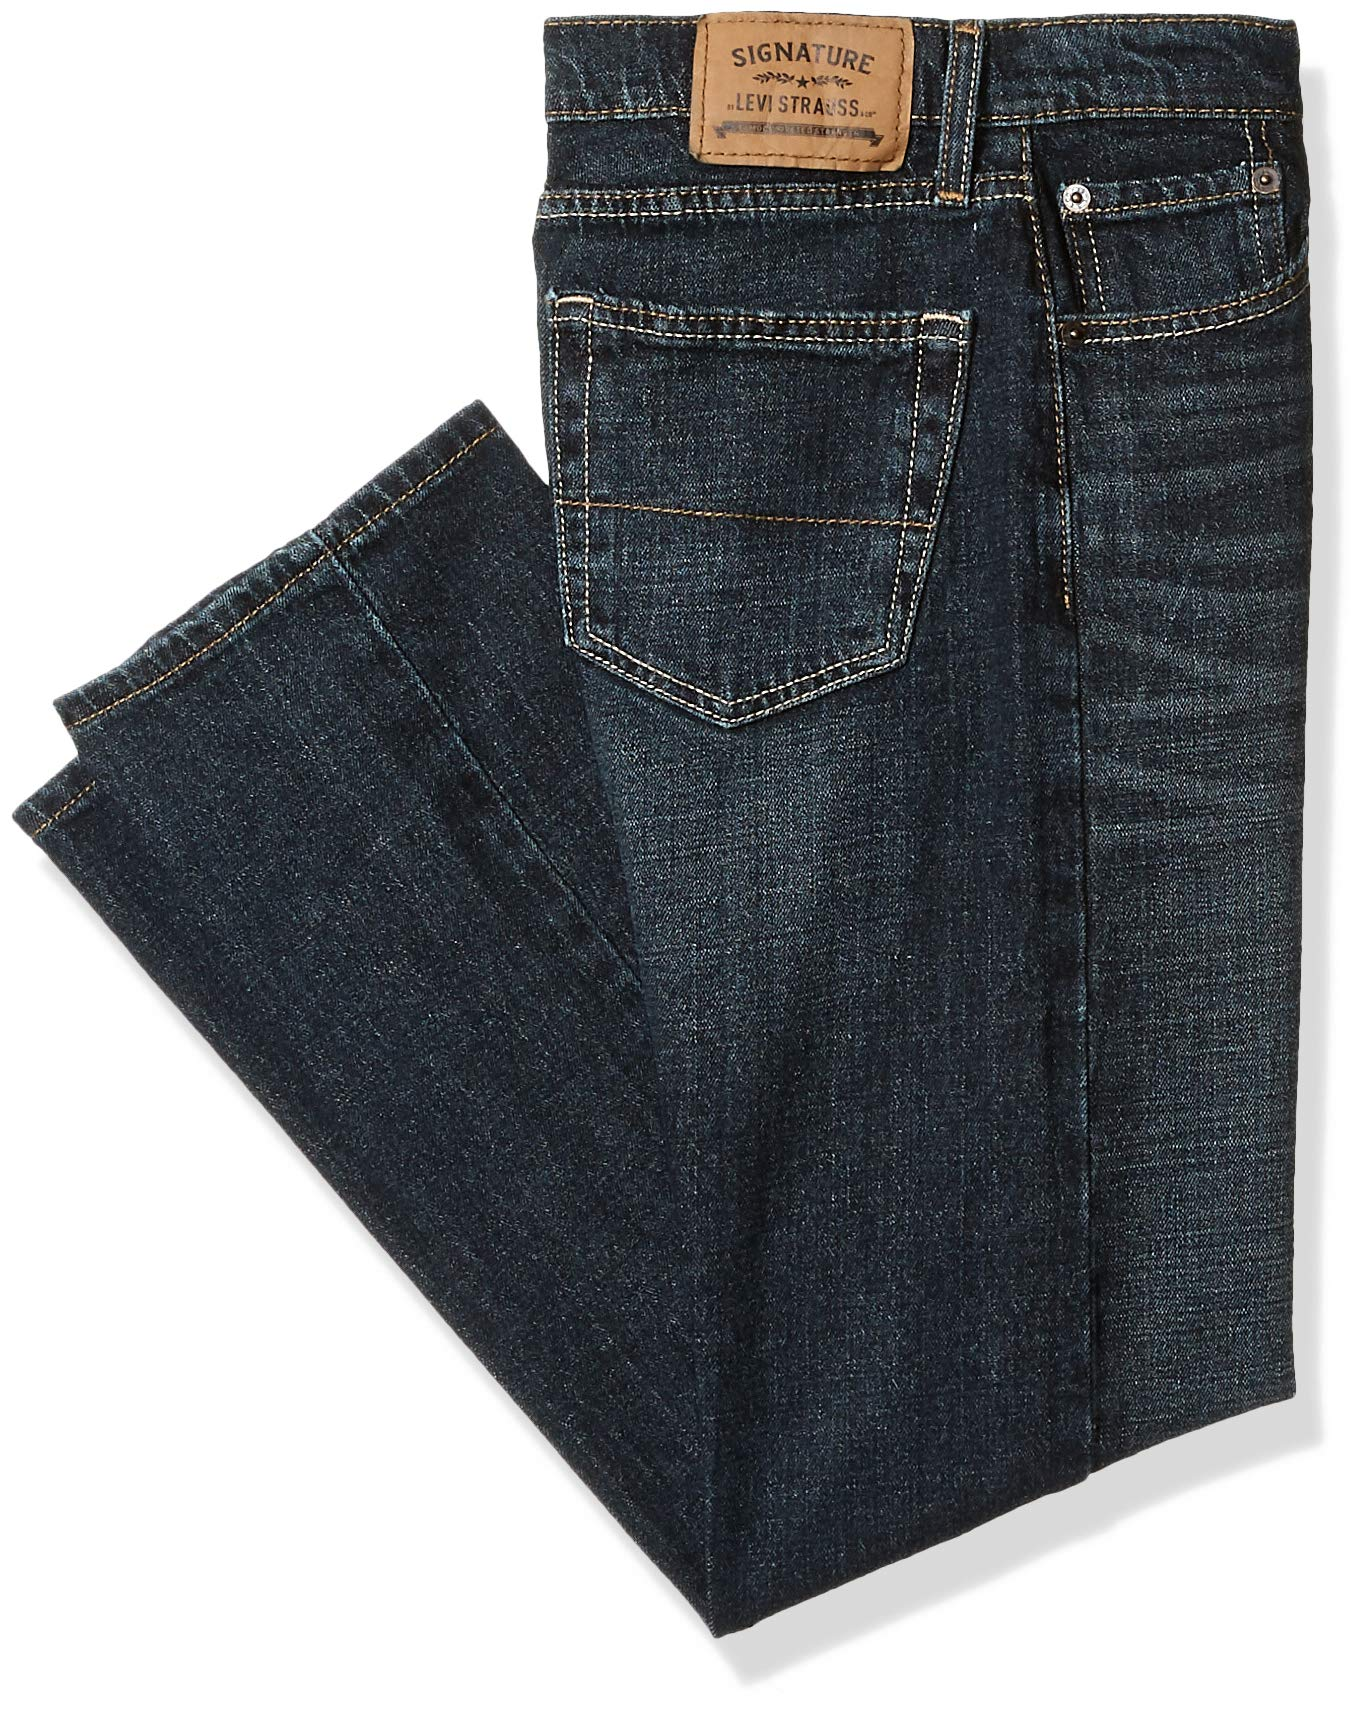 0cbc7247 Signature by Levi Strauss & Co. Gold Label Men's Regular Fit Jeans ...